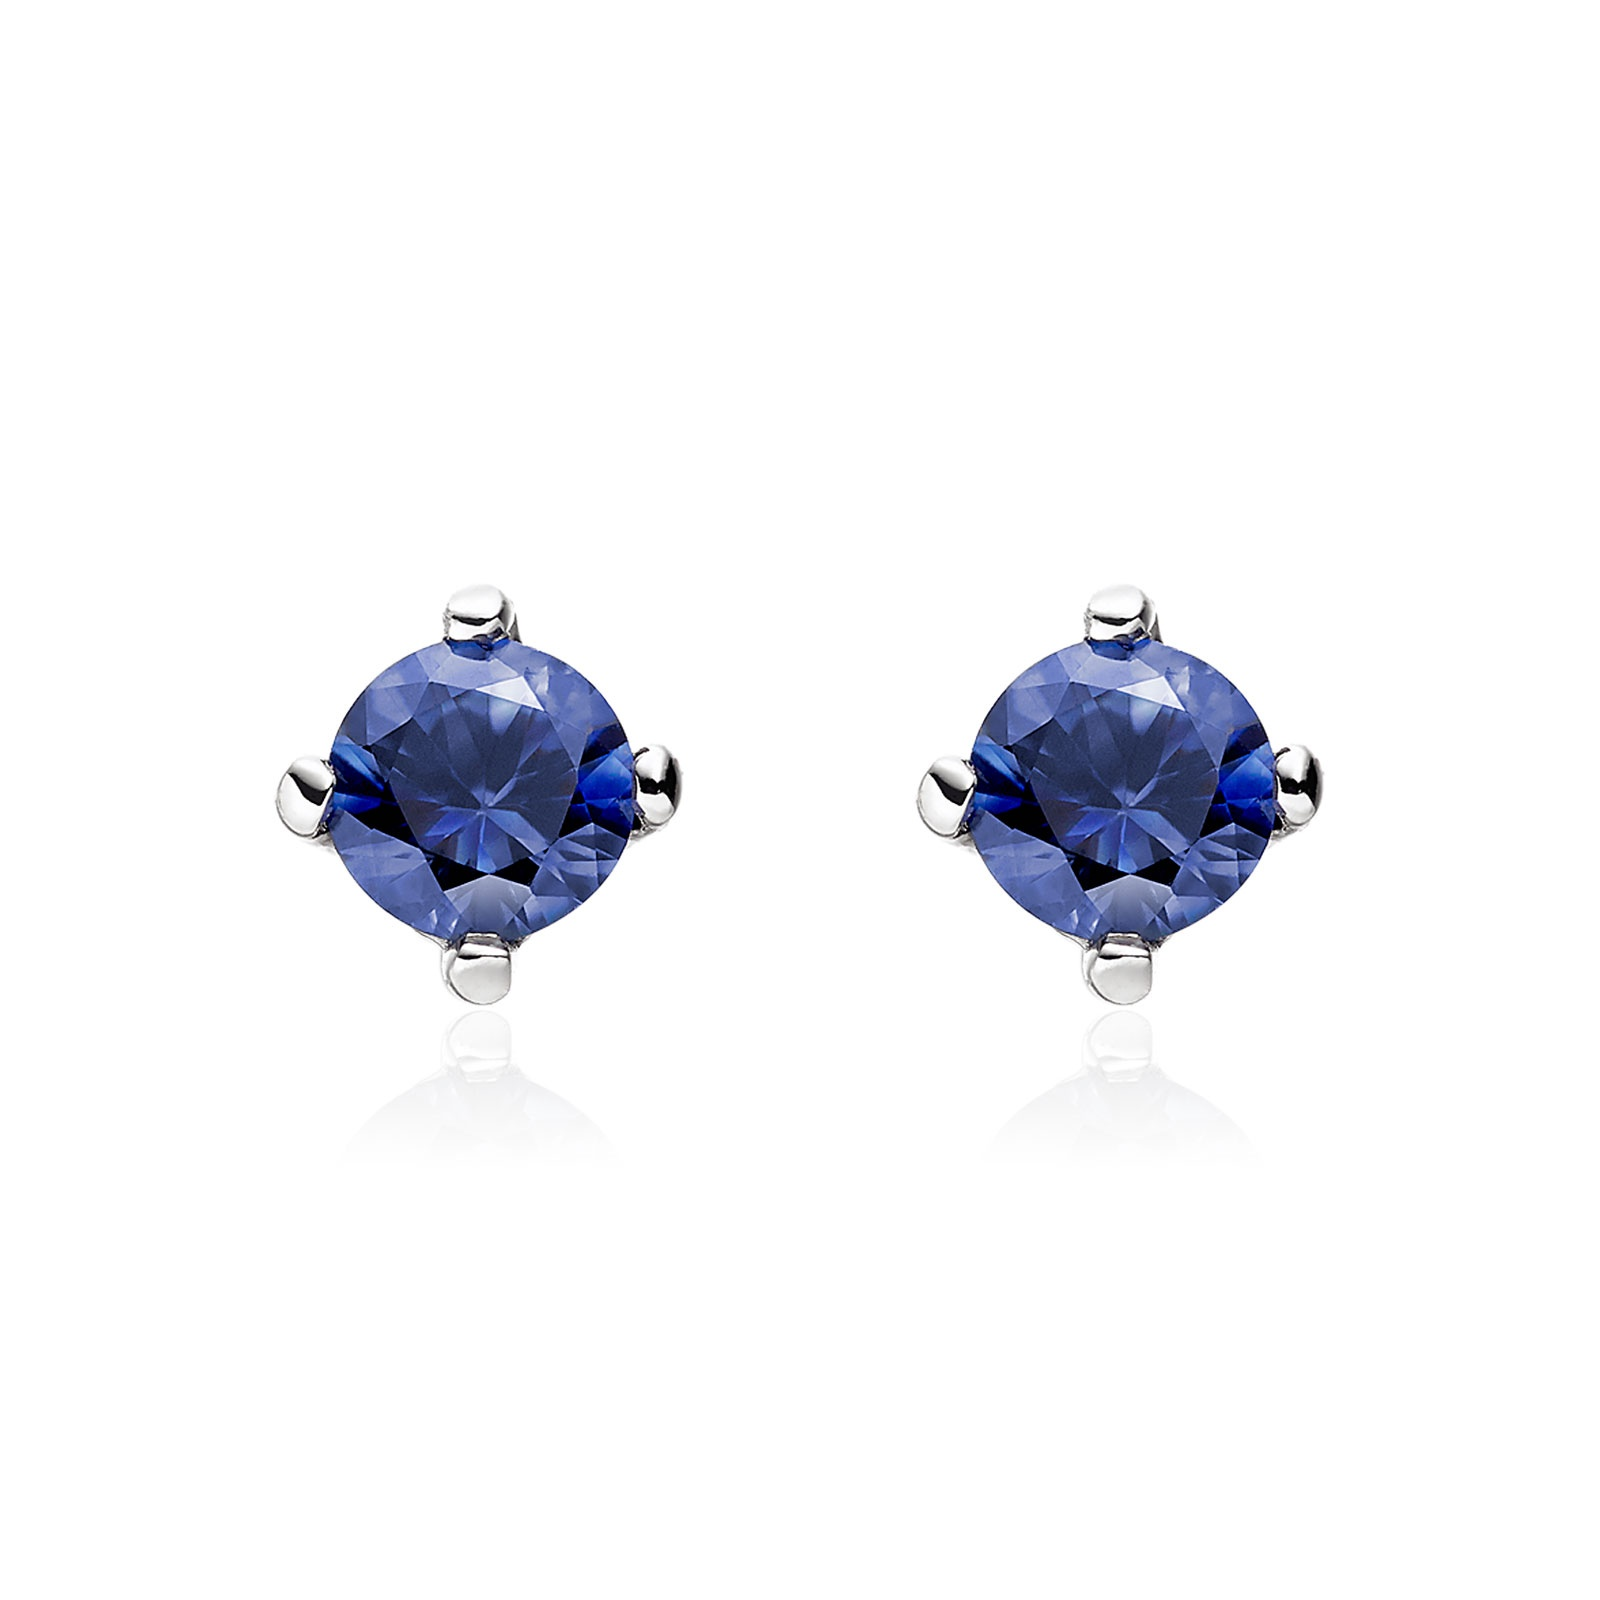 dark earring blue gift box color round cz topaz stones sapphire for jewelry light christmas silver item women free stud